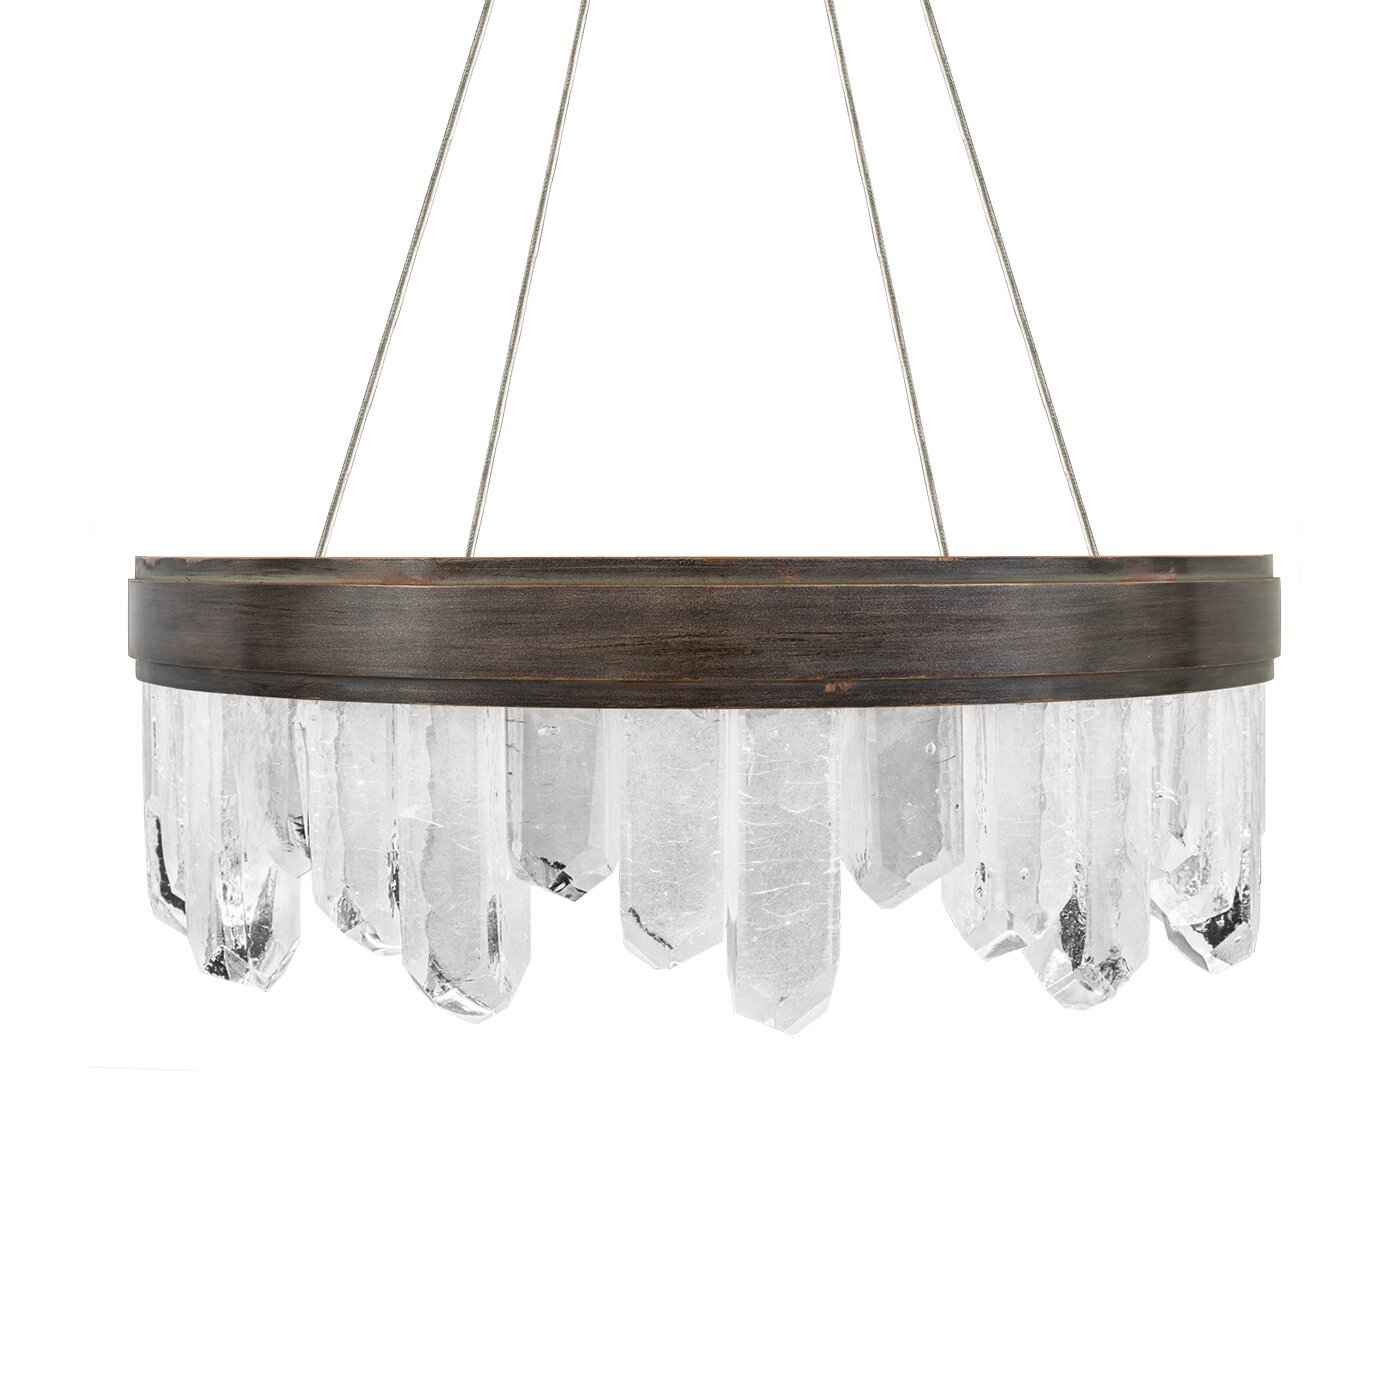 Fine Art Lamps Lior 12 Light Unique Statement Wagon Wheel Chandelier Perigold